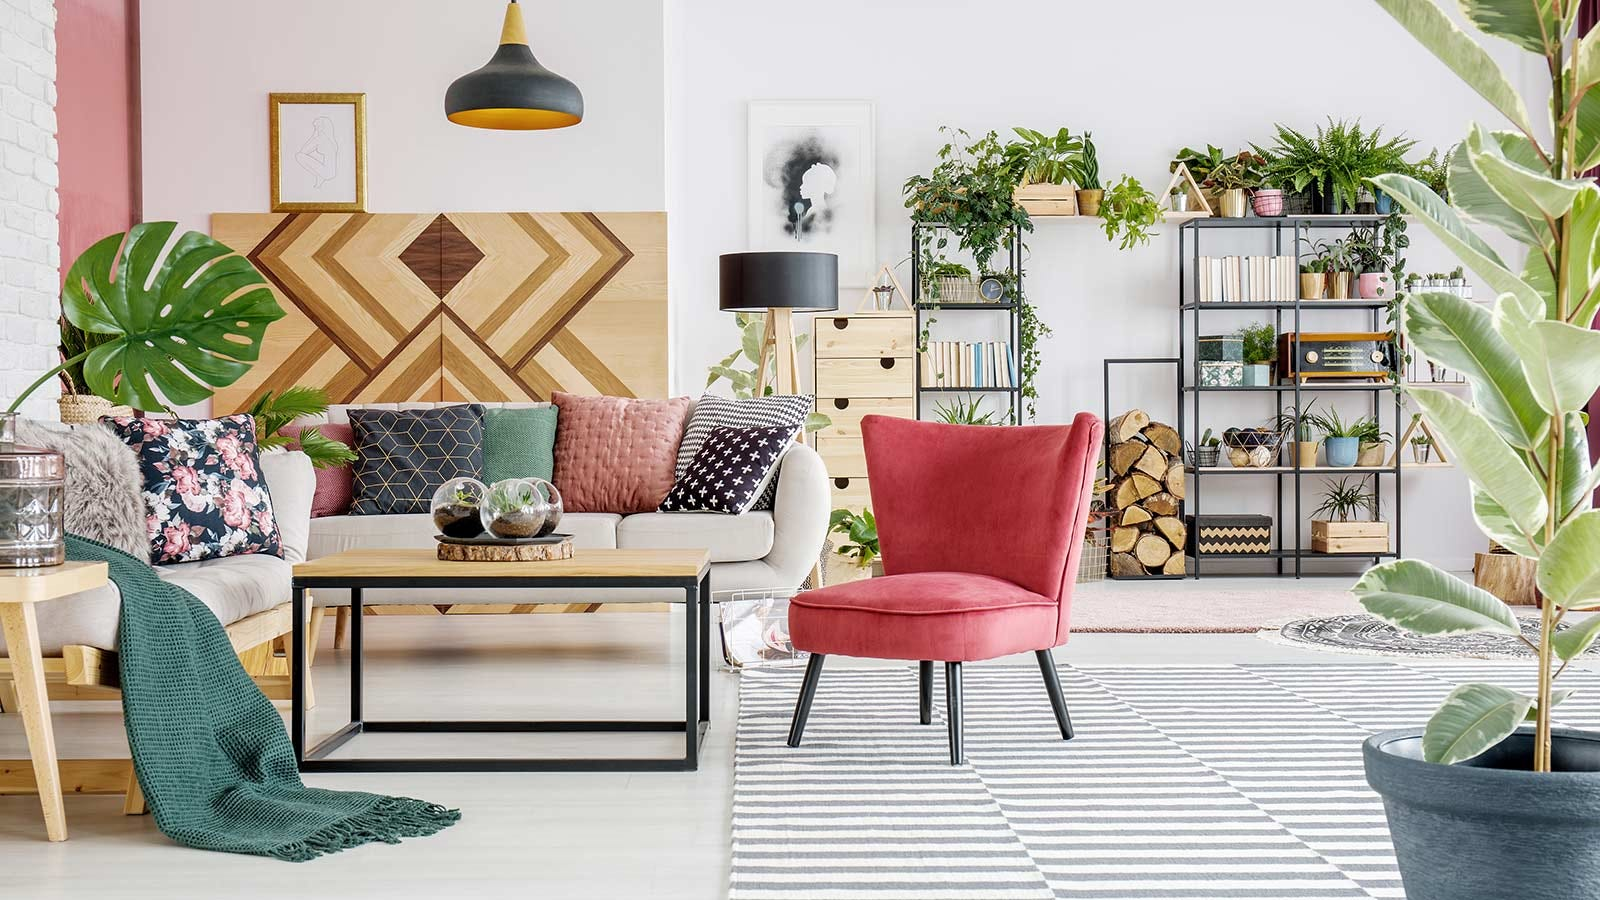 A busy but well appointed living space with plants, shelving, seating, and a wide array of colors and textures.